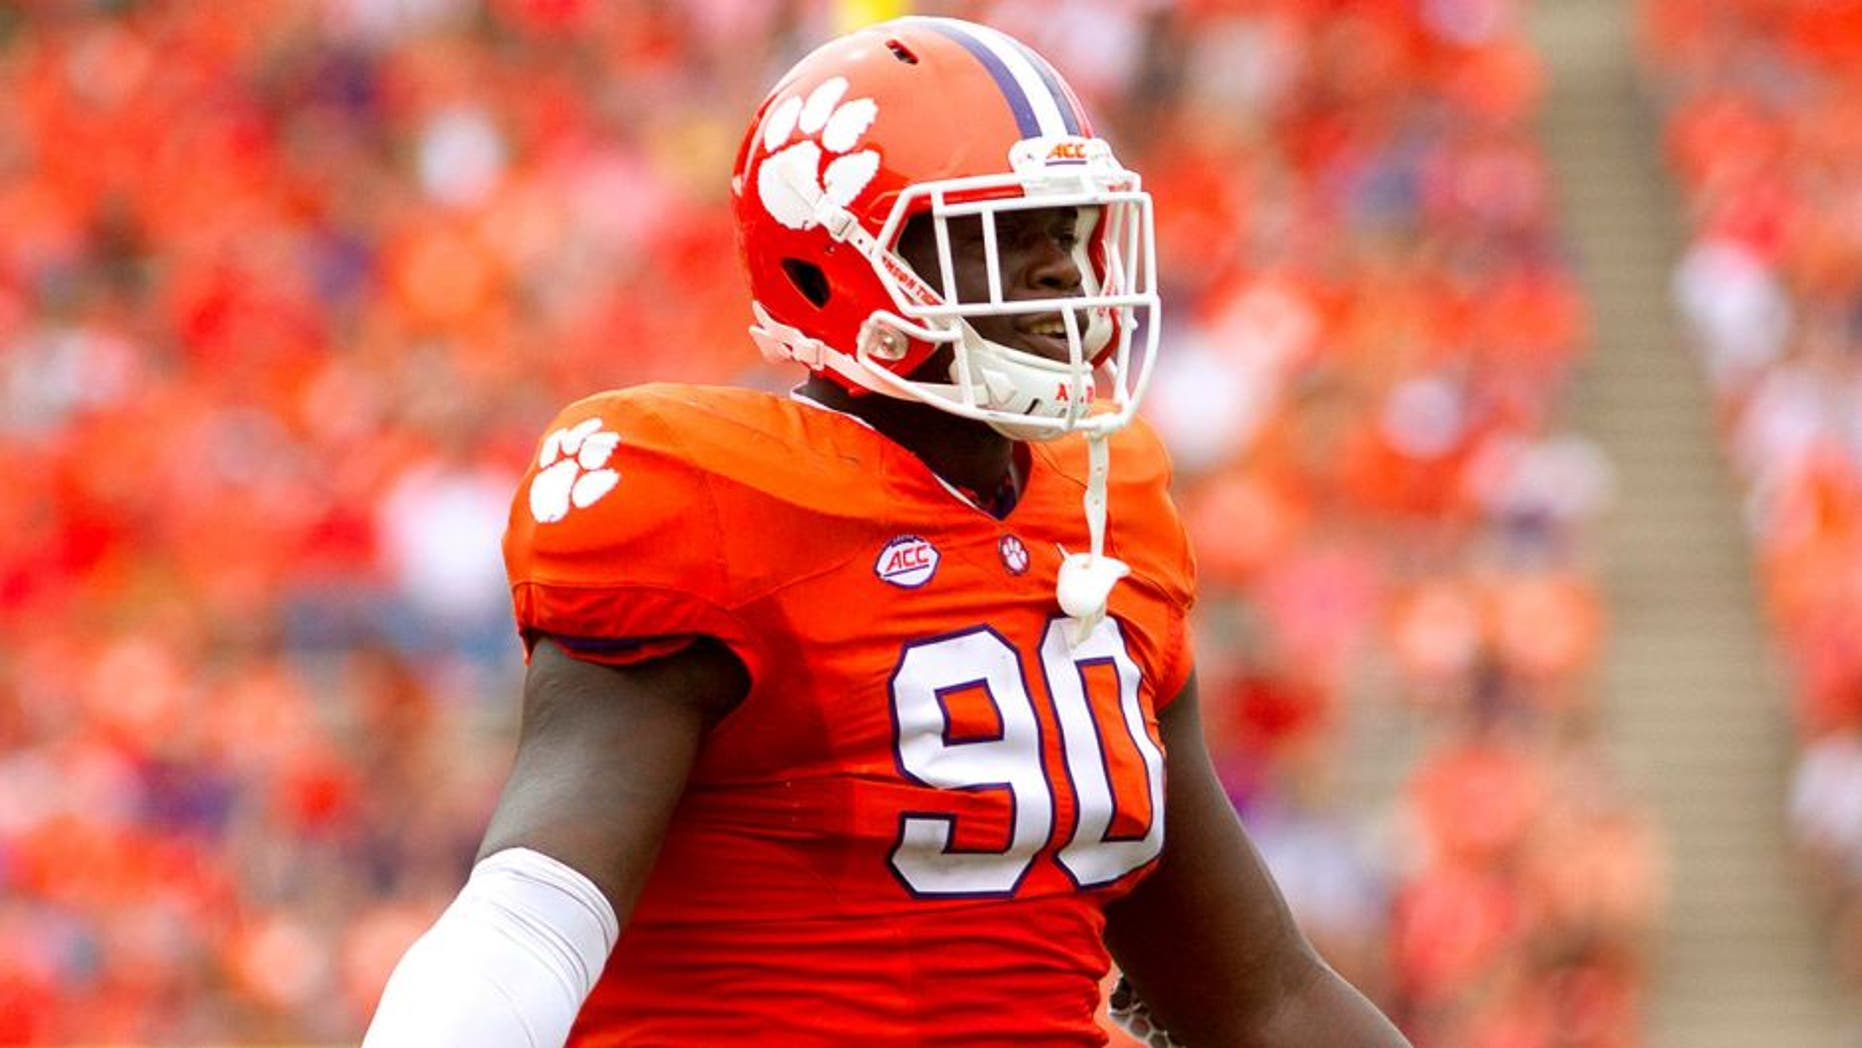 Sep 12, 2015; Clemson, SC, USA; Clemson Tigers defensive end Shaq Lawson (90) reacts during the second half against the Appalachian State Mountaineers at Clemson Memorial Stadium. Mandatory Credit: Joshua S. Kelly-USA TODAY Sports